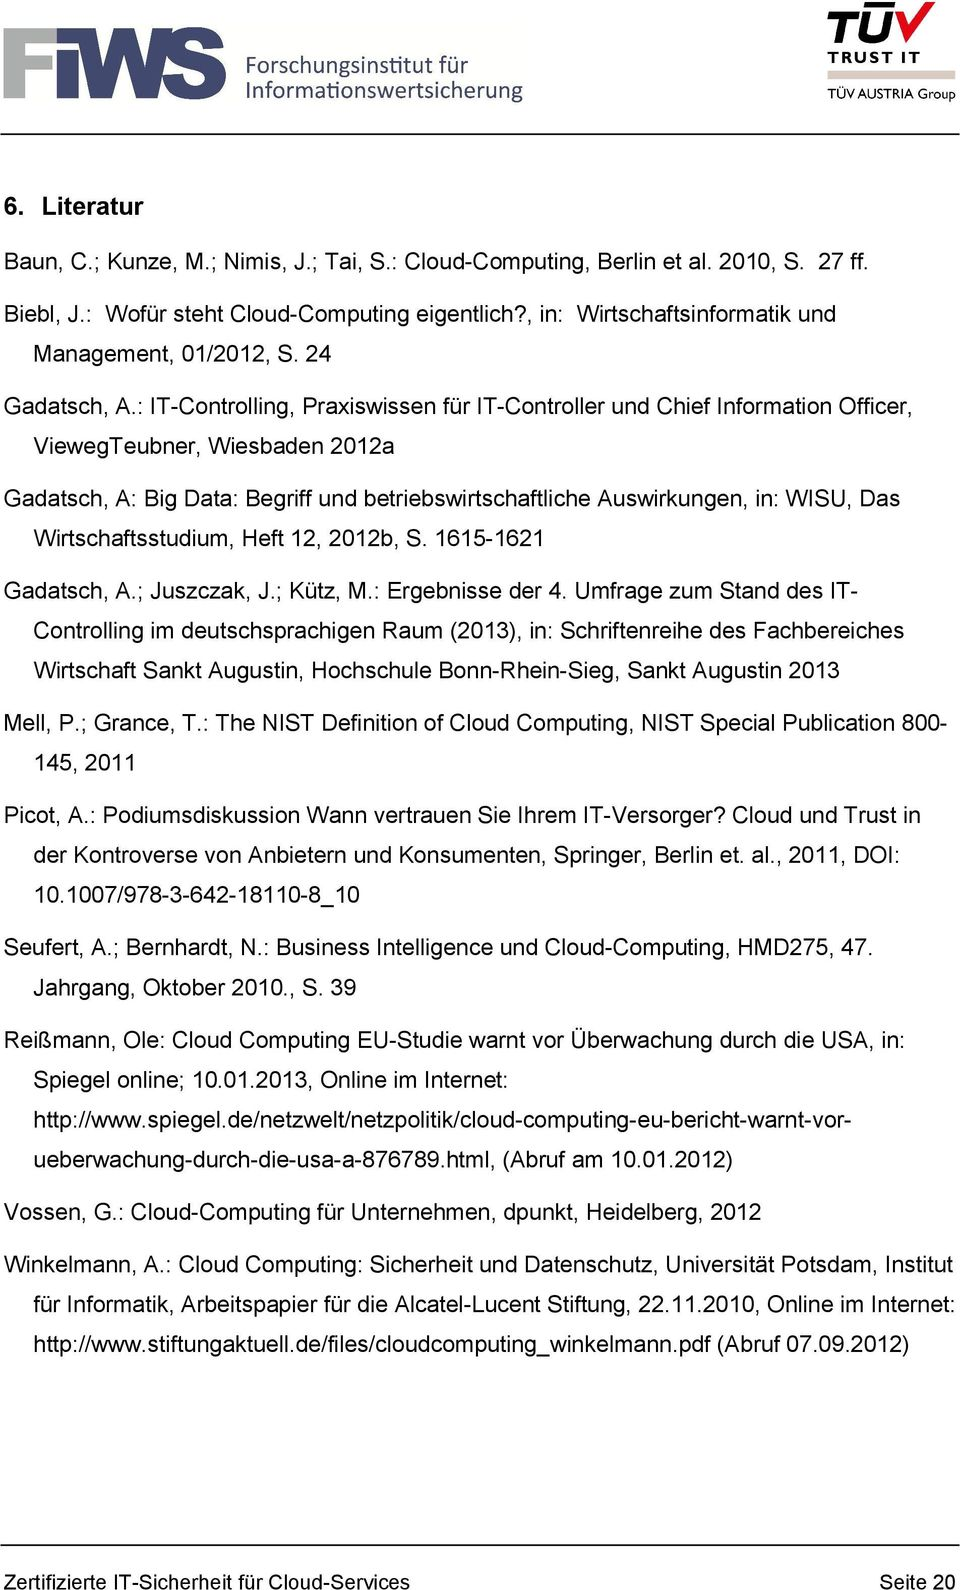 : IT-Controlling, Praxiswissen für IT-Controller und Chief Information Officer, ViewegTeubner, Wiesbaden 2012a Gadatsch, A: Big Data: Begriff und betriebswirtschaftliche Auswirkungen, in: WISU, Das